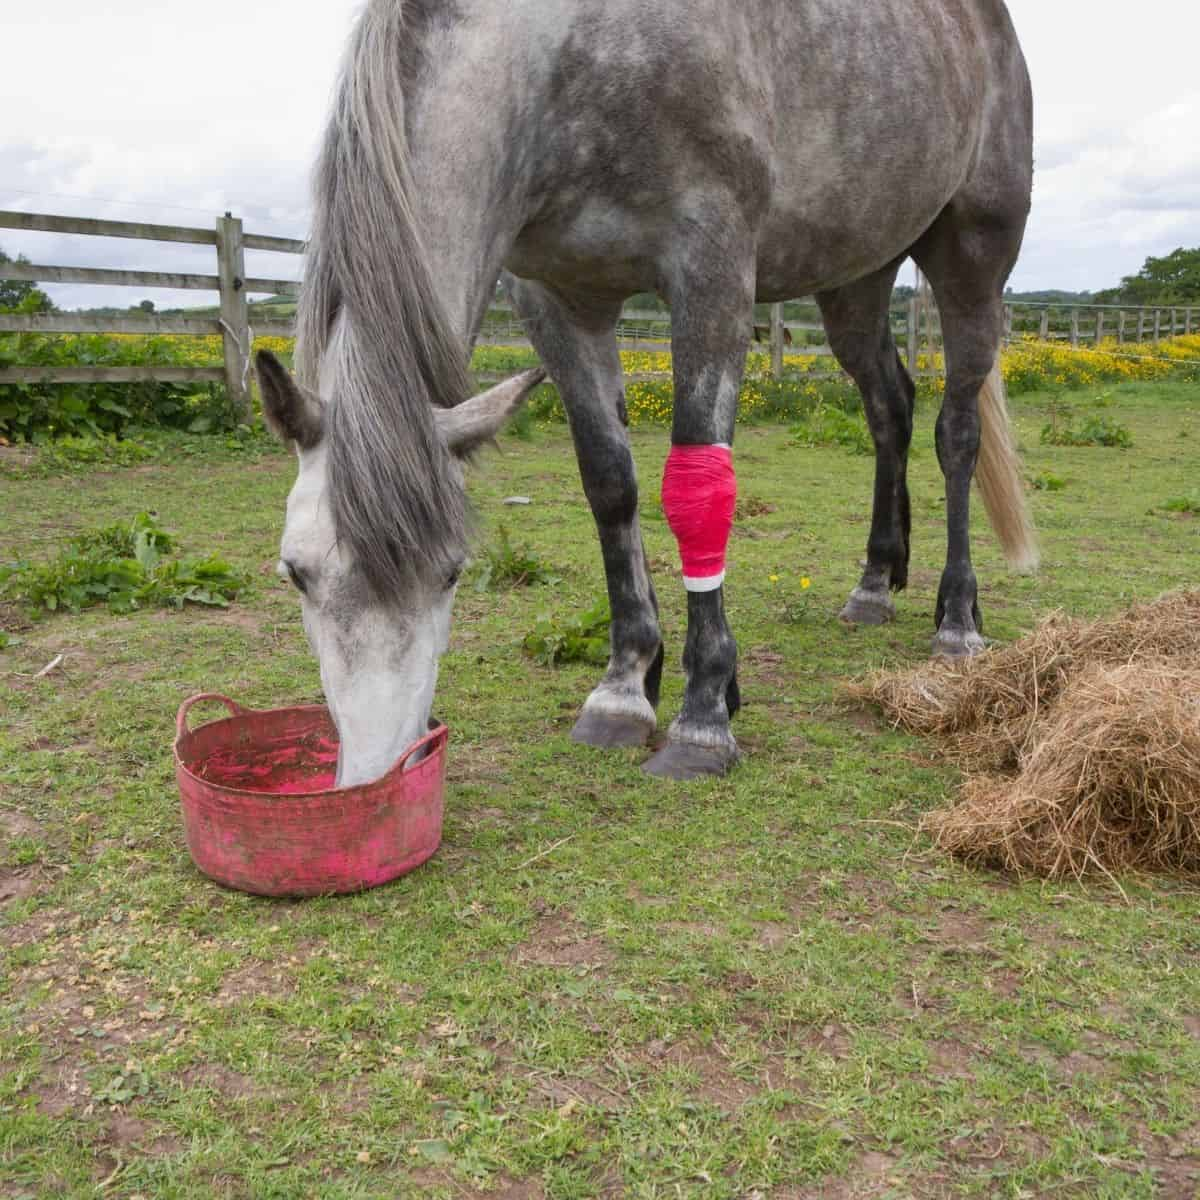 Grey horse with red leg wrap eating from bucket